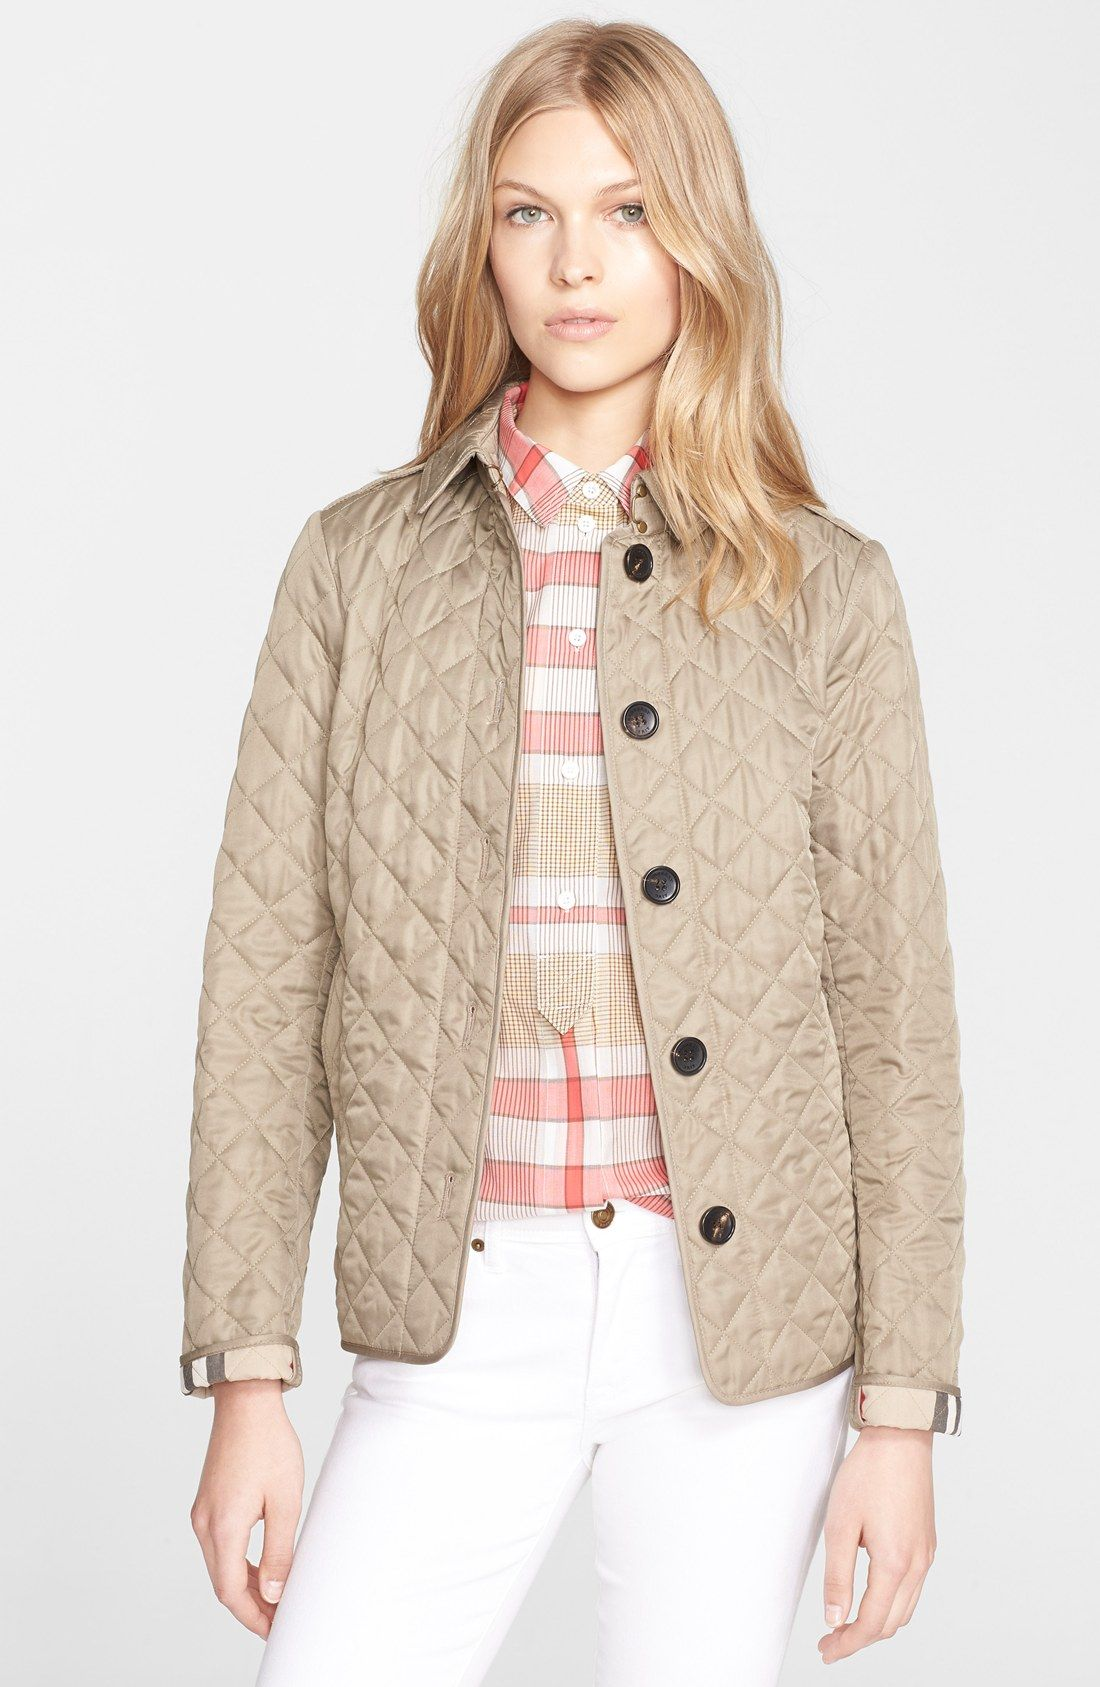 Burberry Brit 'Ashurst' Quilted Jacket | Nordstrom | Wish list ... : nordstrom burberry quilted jacket - Adamdwight.com